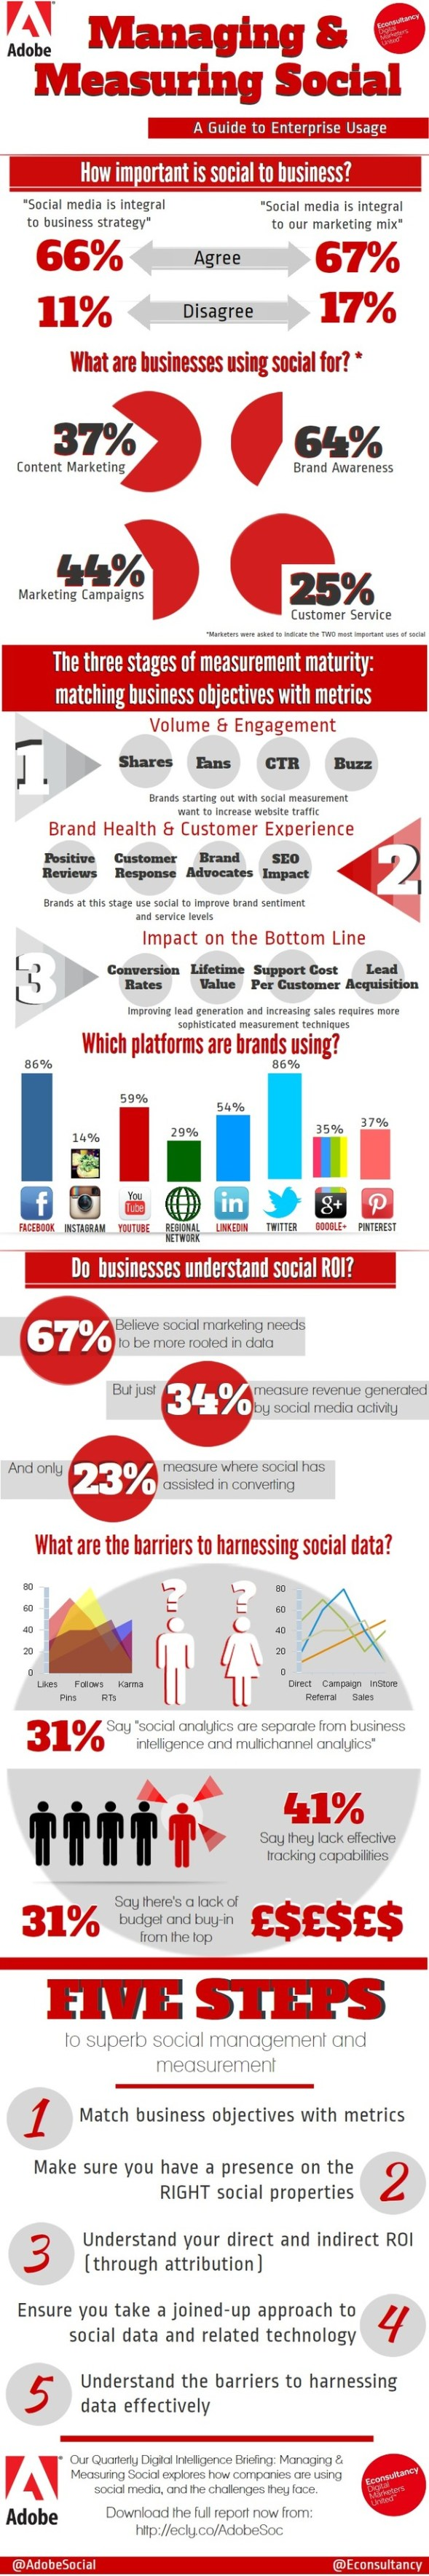 Social Media Is Important to Business and Marketing